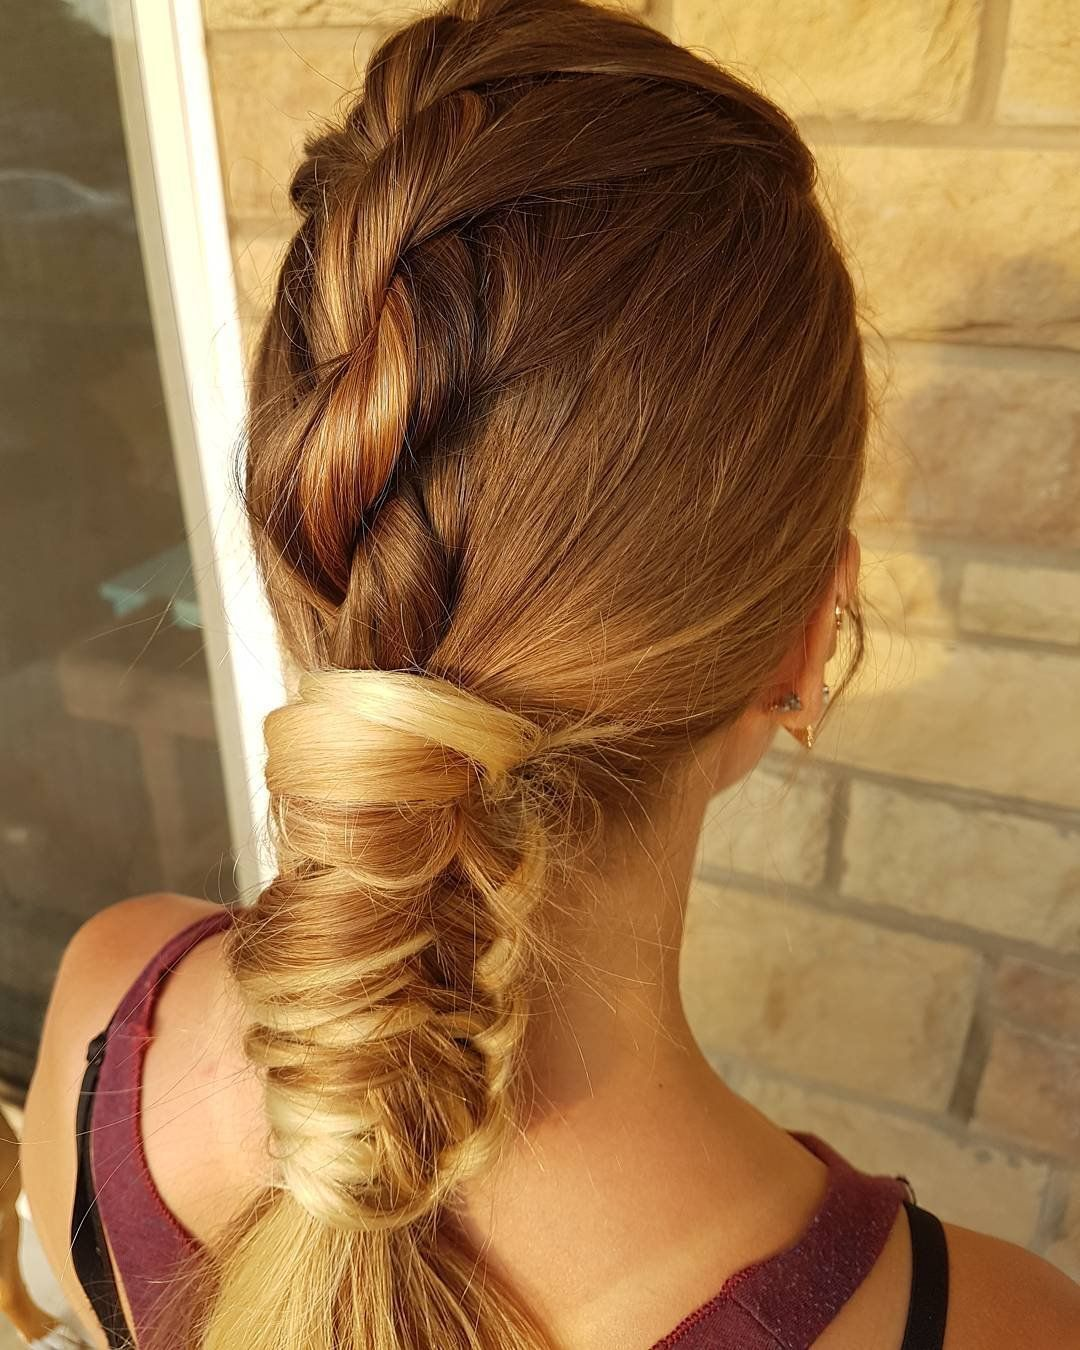 Simple Braided Hairstyles Magnificent Pinjessica David On Hair  Pinterest  Rope Braid Braid